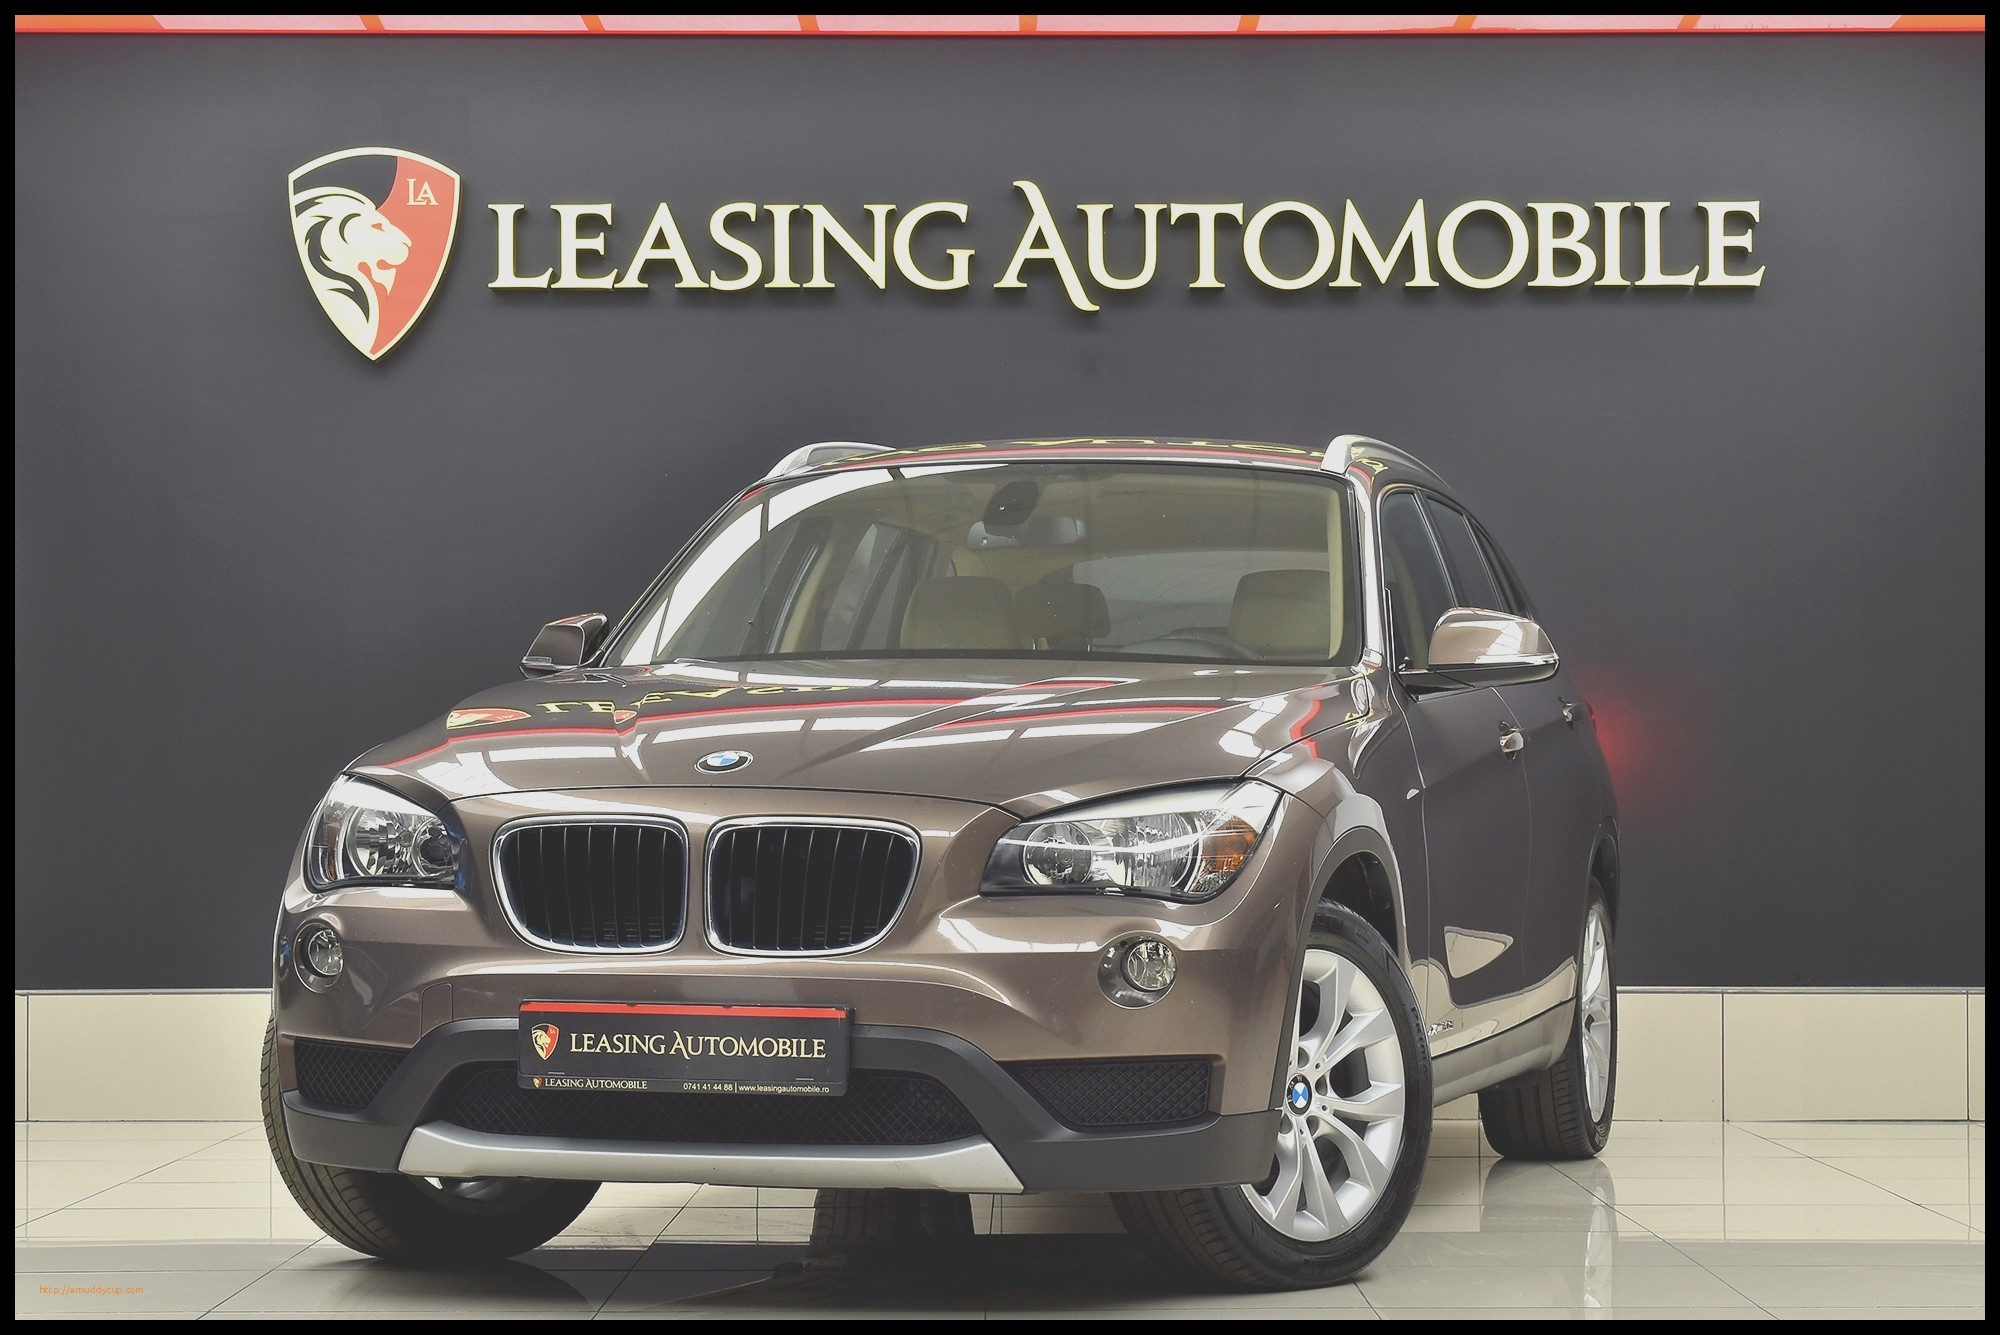 Bmw 325 Lease Elegant Bmw 528i Elegant Lease Bmw X1 Beautiful Auto Rulate Bmw X1 2